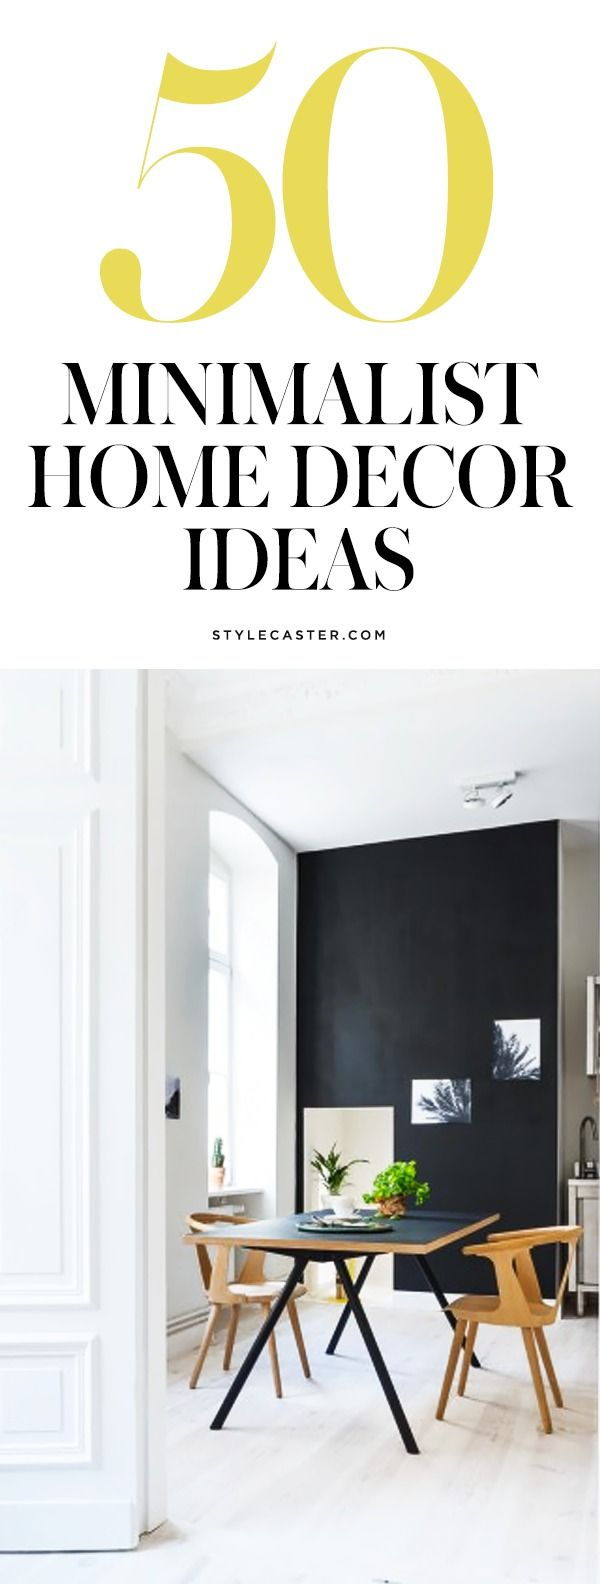 50 gorgeous home decor ideas for minimalists - Free Home Decorating Ideas